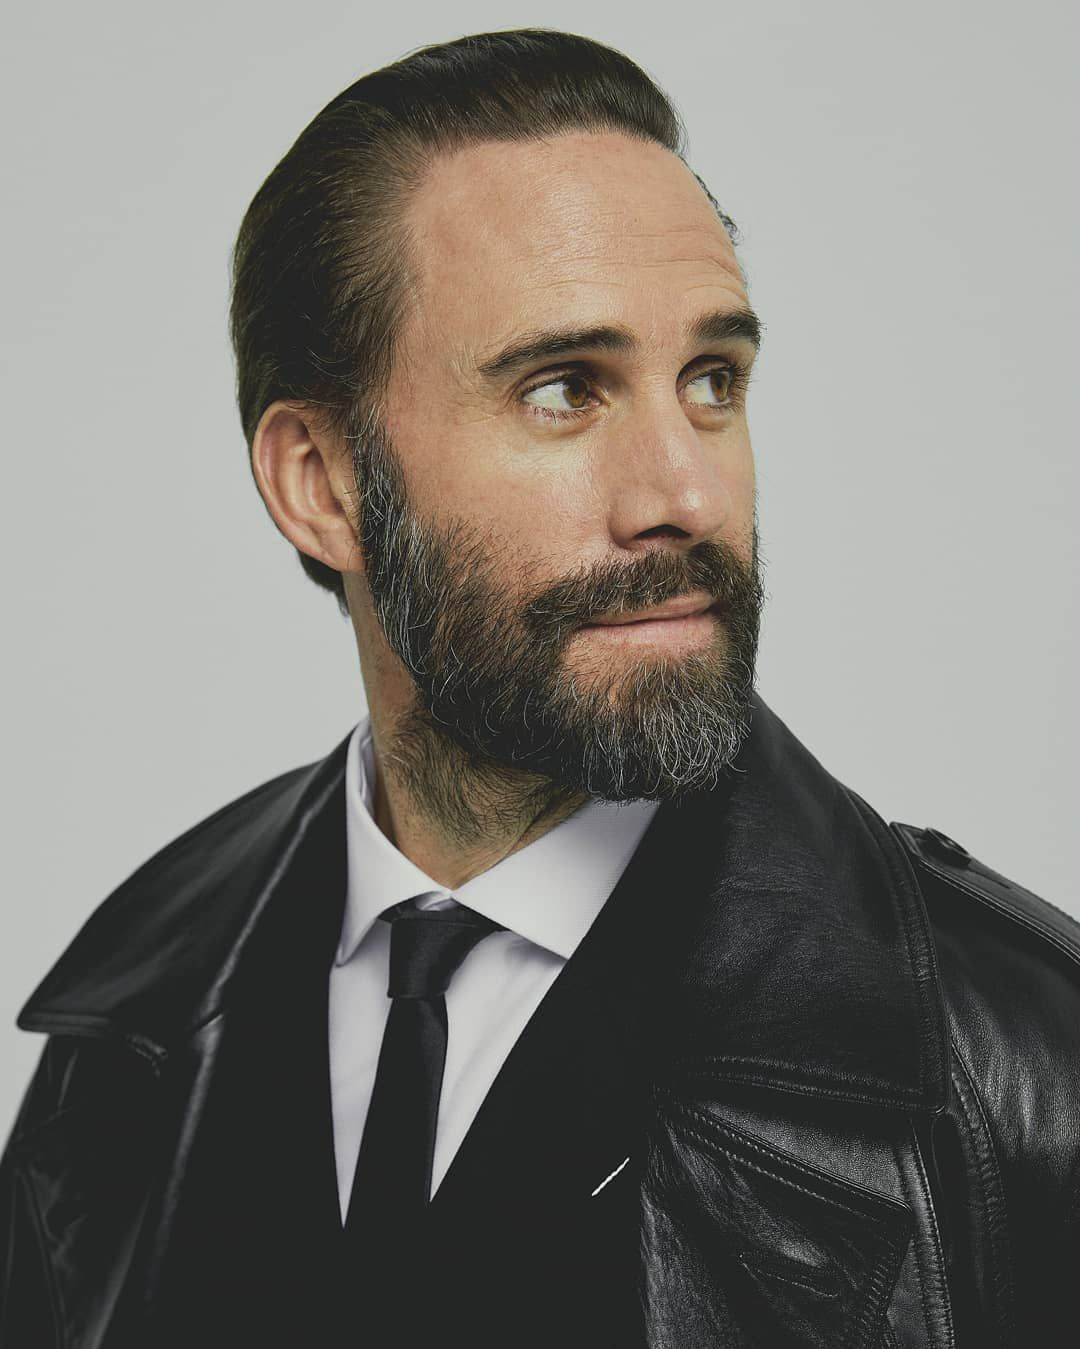 Joseph Fiennes Daily On Instagram Wishing The Happiest Of Birthdays To This Gem Of A Guy Hope He Has A Won Joseph Fiennes Actors Actresses Famous In Love